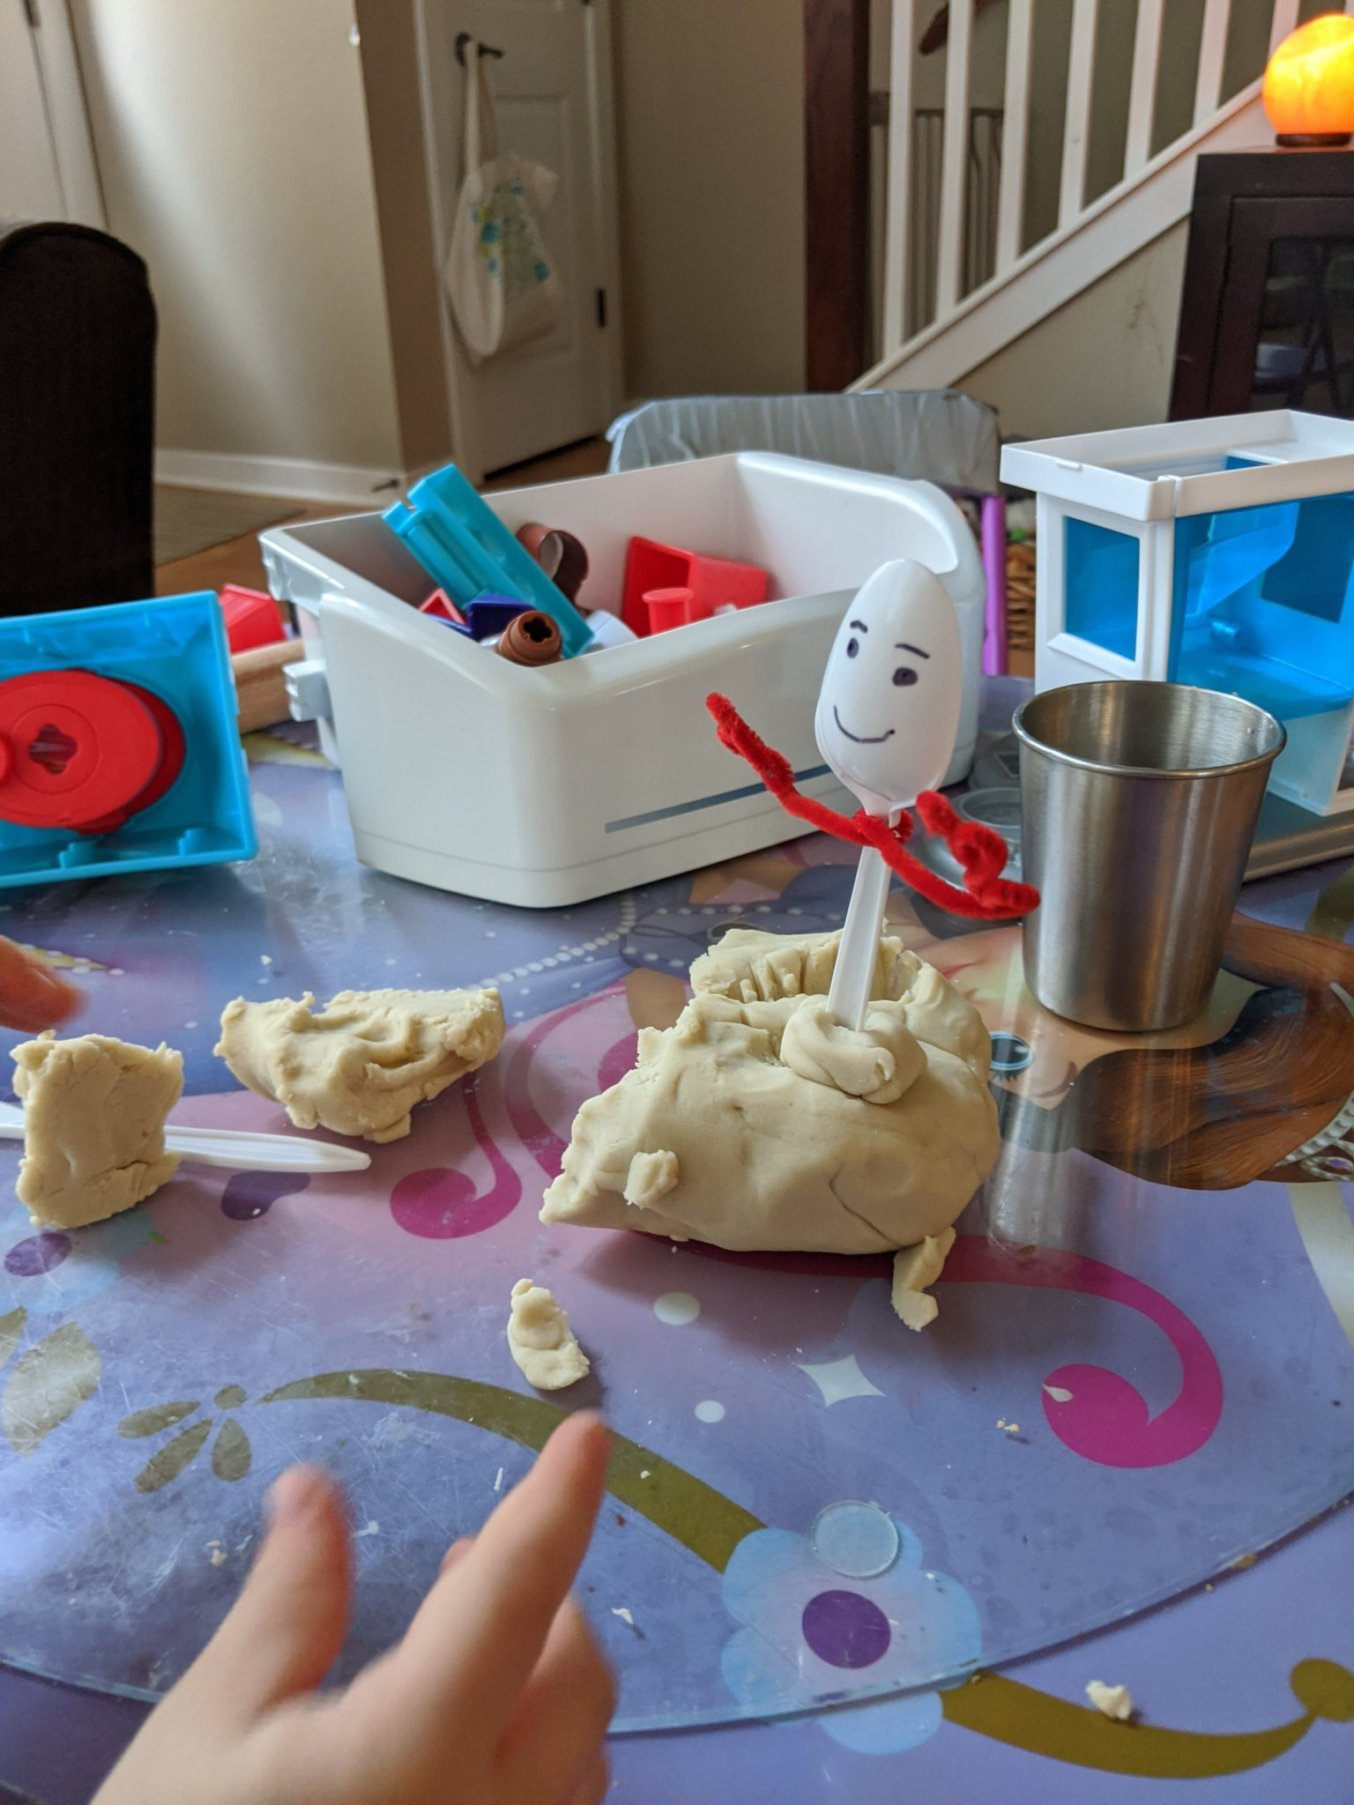 Homemade Zero-waste Play Dough